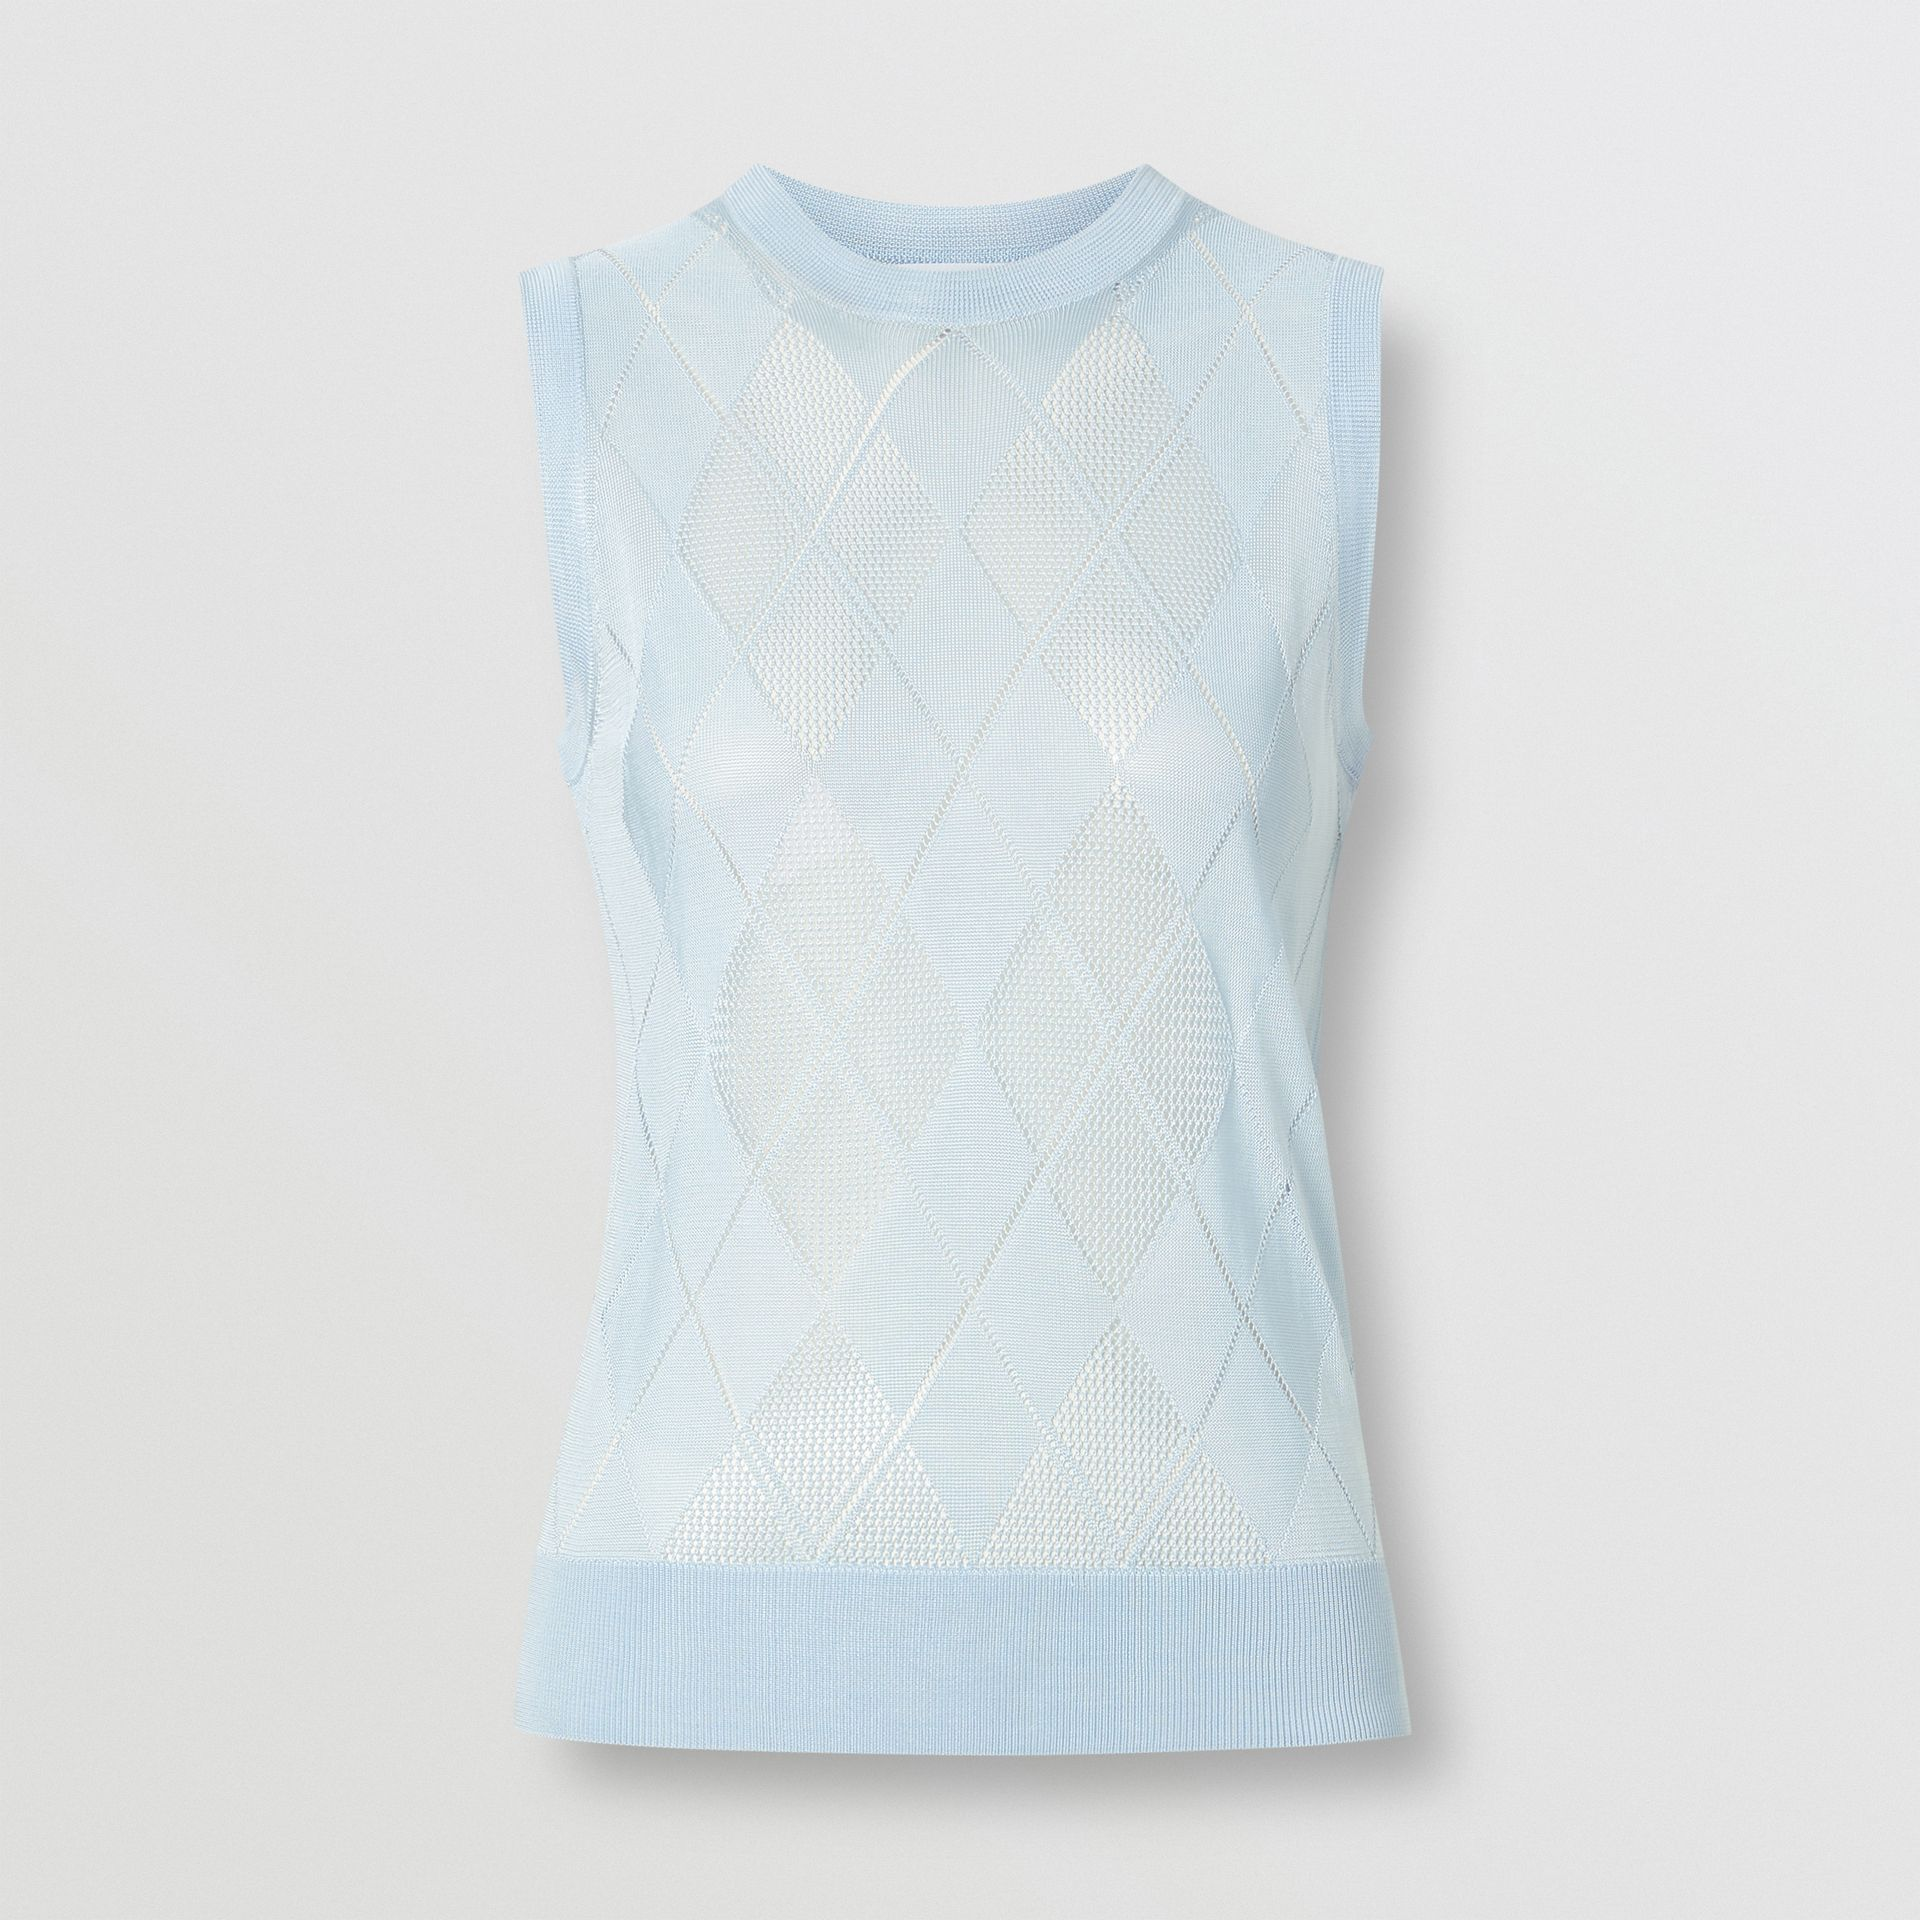 Monogram Motif Pointelle Knit Vest in Pale Blue - Women | Burberry Hong Kong S.A.R - gallery image 3